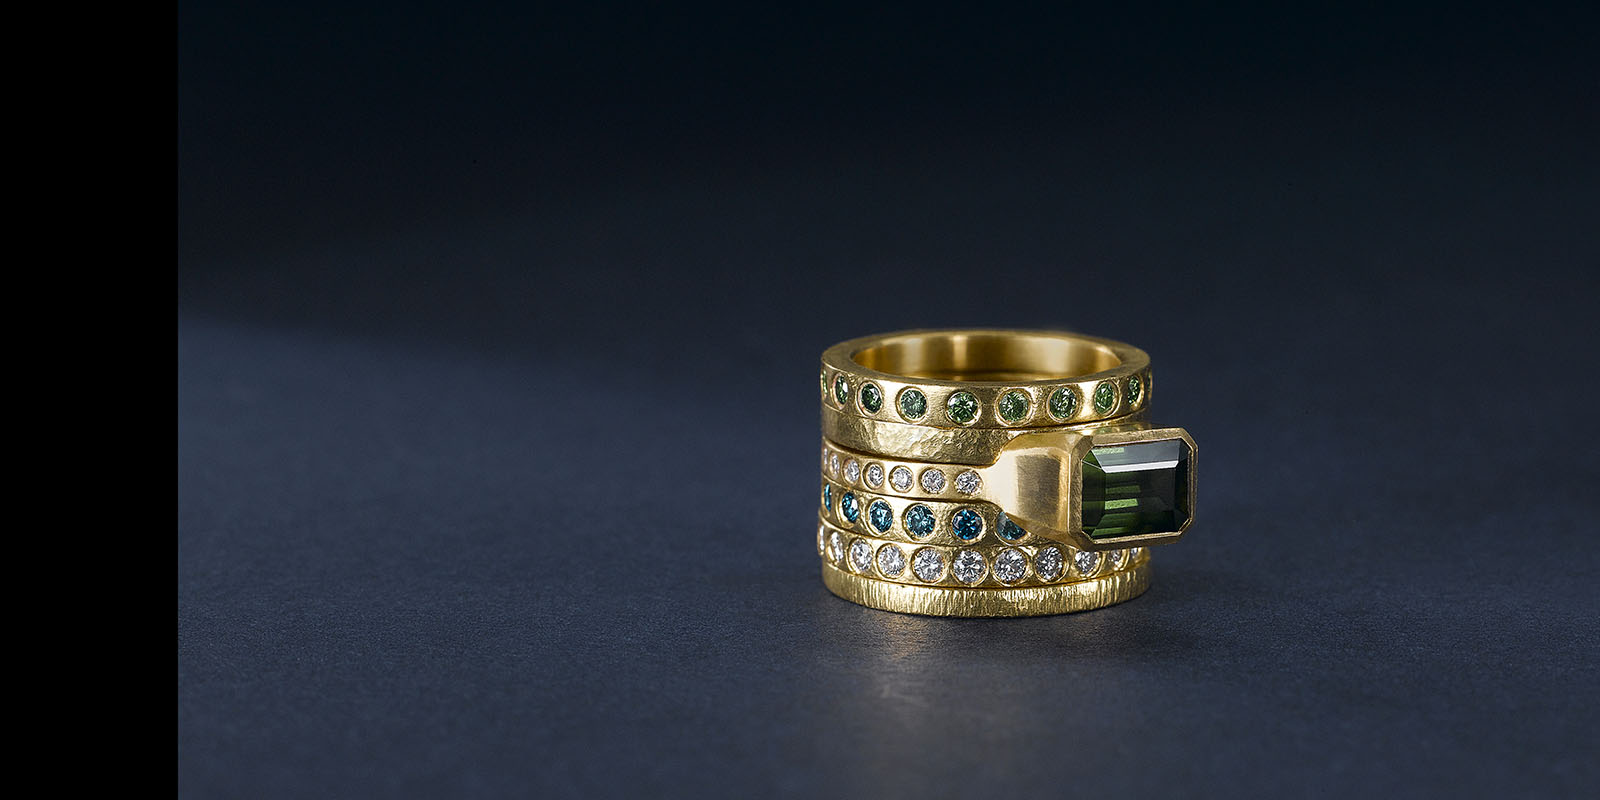 Stacking bands. 22 karat gold, color diamonds. Tourmaline solitaire.